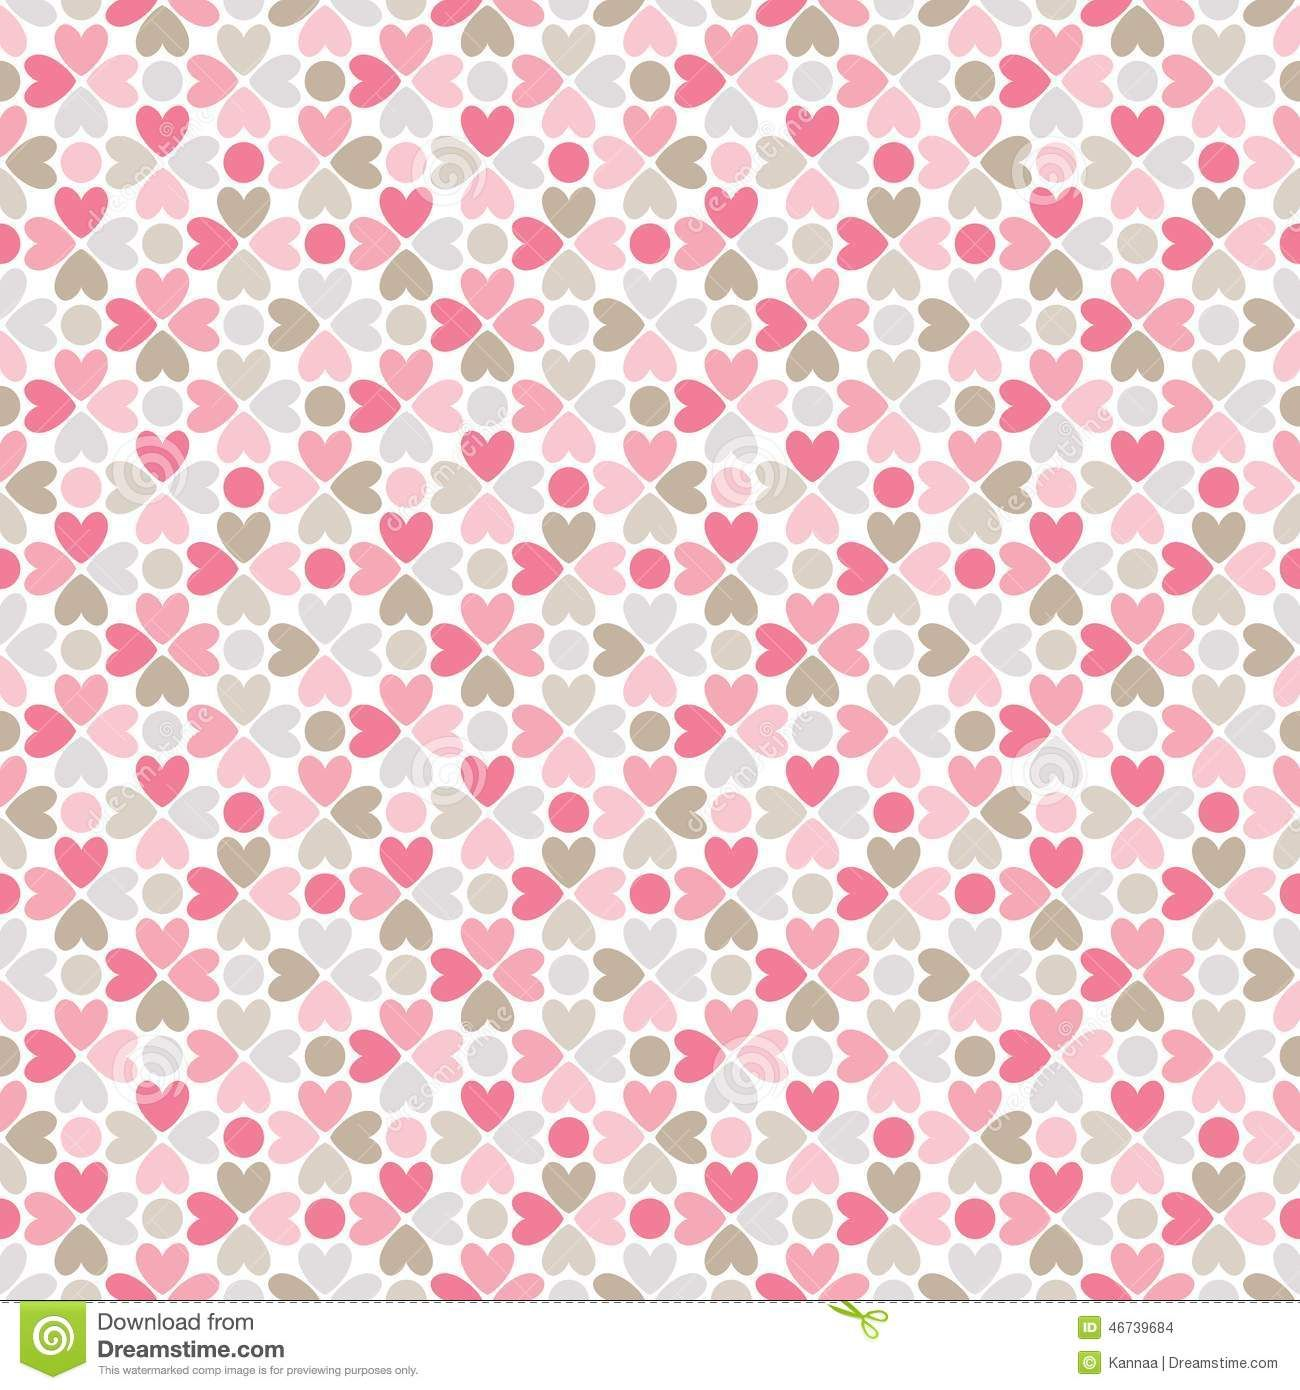 Papel scrap para imprimir rosa buscar con google for Papel decorativo pared